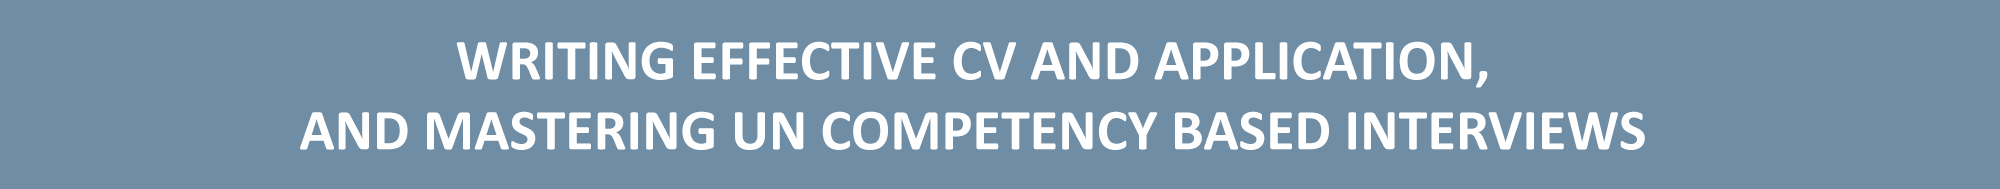 Writing effective CV and application, and mastering UN Competency based interviews